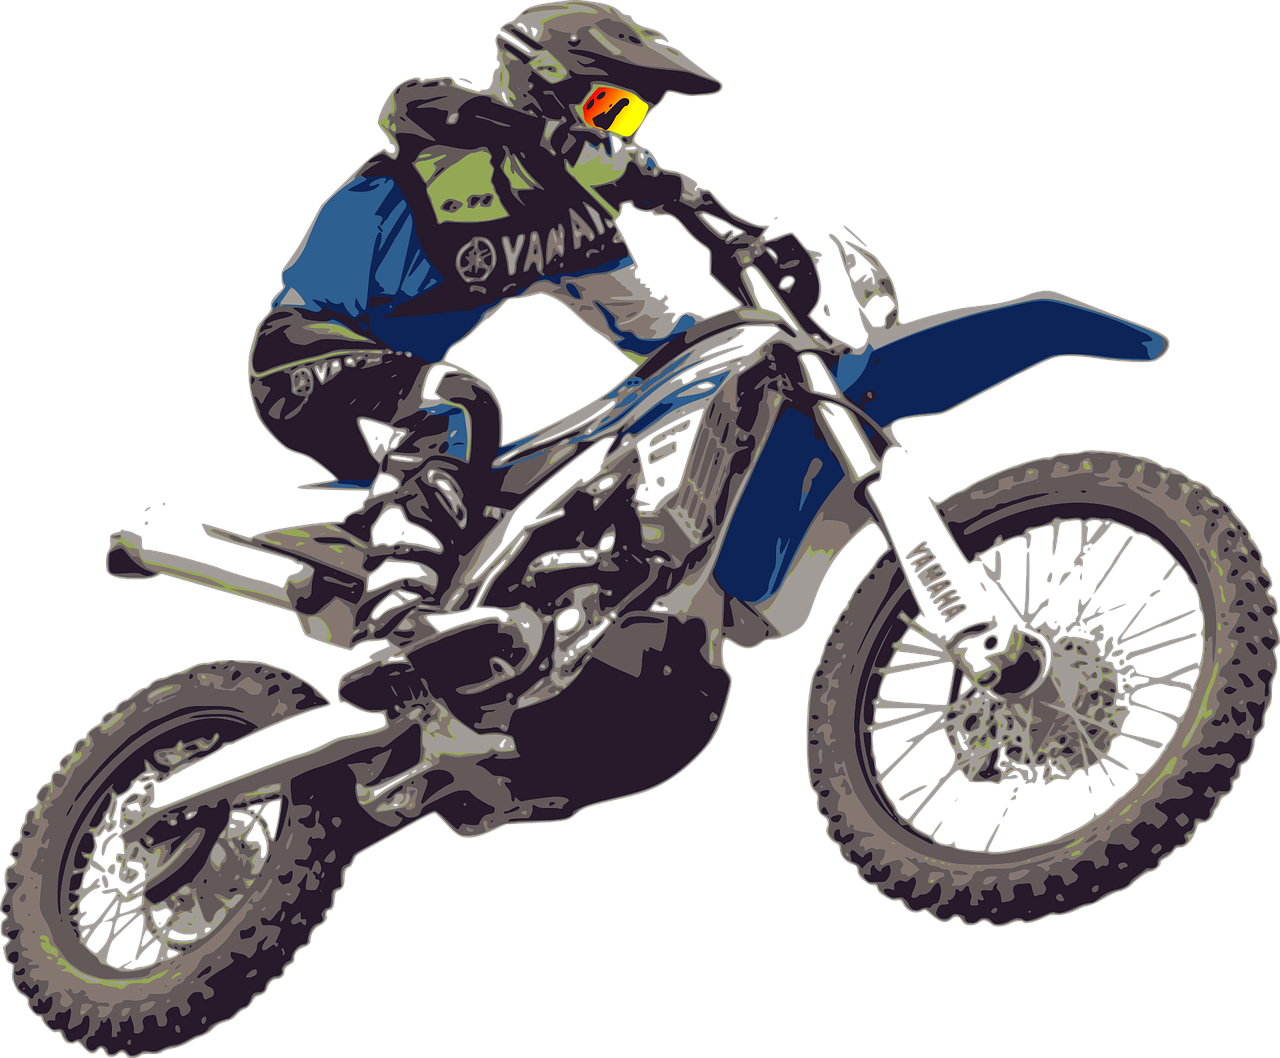 Motorcycle rider - Motorcycle Insurance & Other Bikes